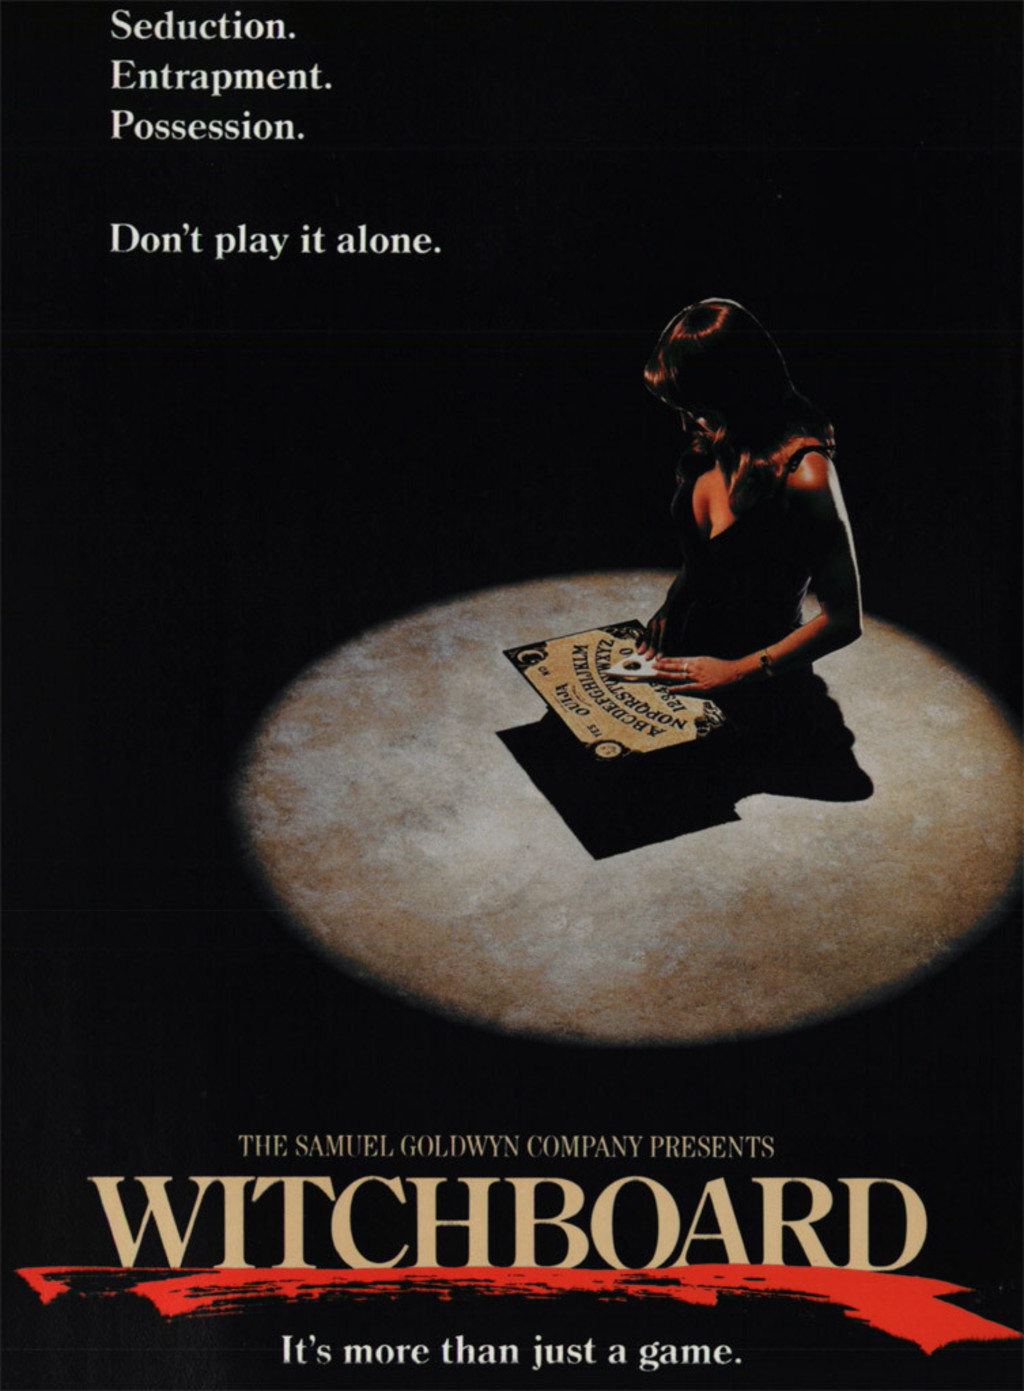 Watch Witchboard on Netflix Today! | NetflixMovies.com